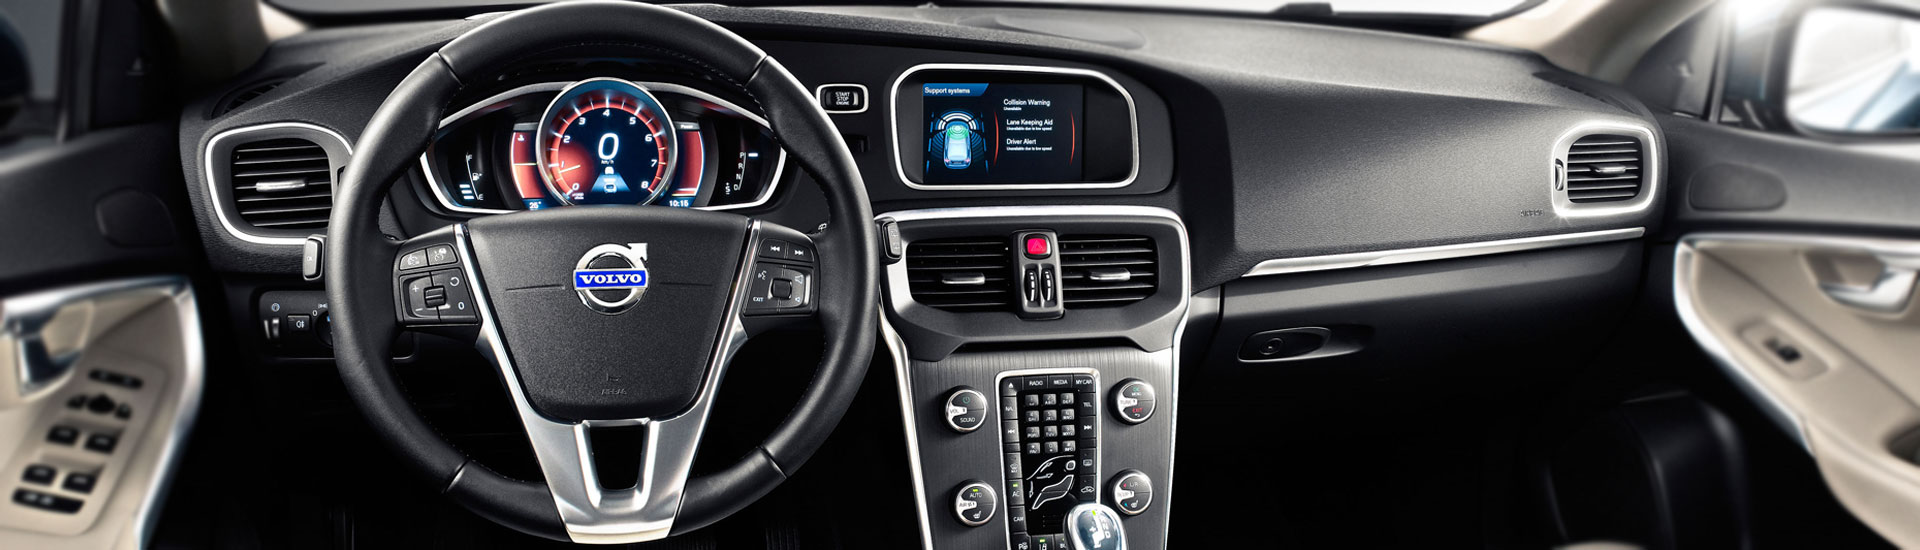 Volvo V40 Custom Dash Kits